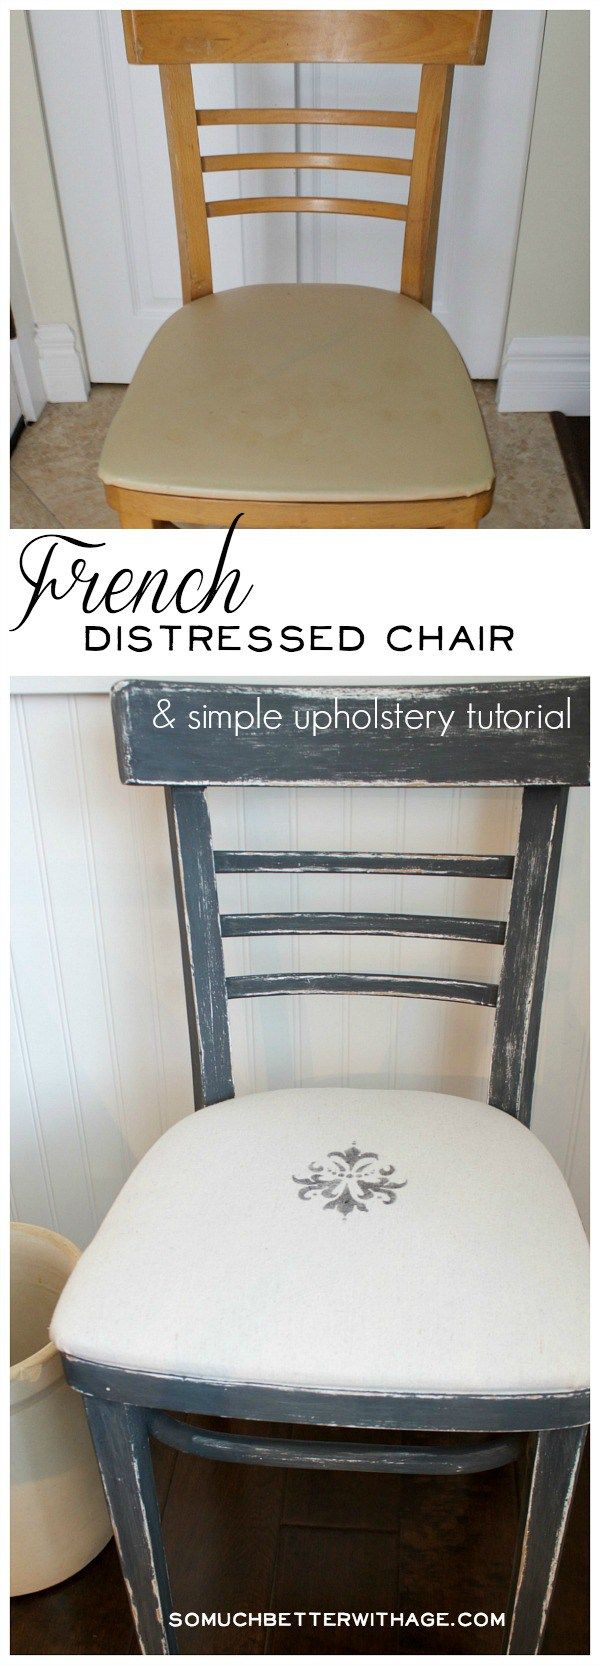 French Distressed Chair and Easy Upholstery Tutorial | So Much Better With Age